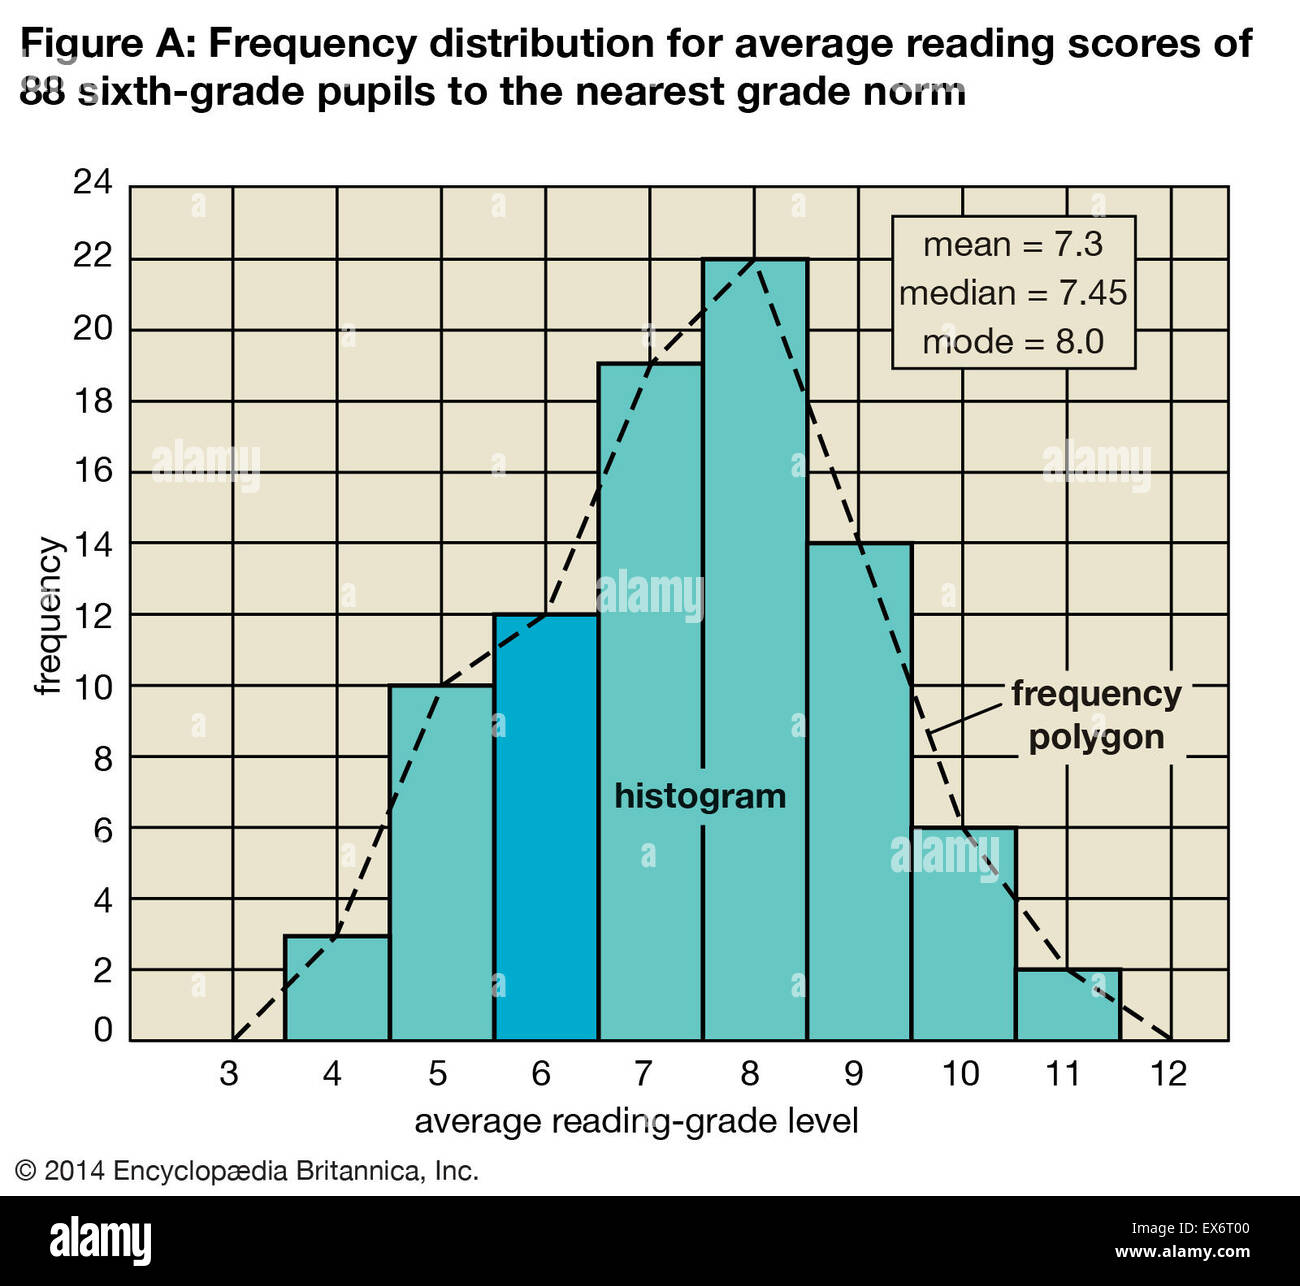 Frequency distribution for average reading scores - Stock Image